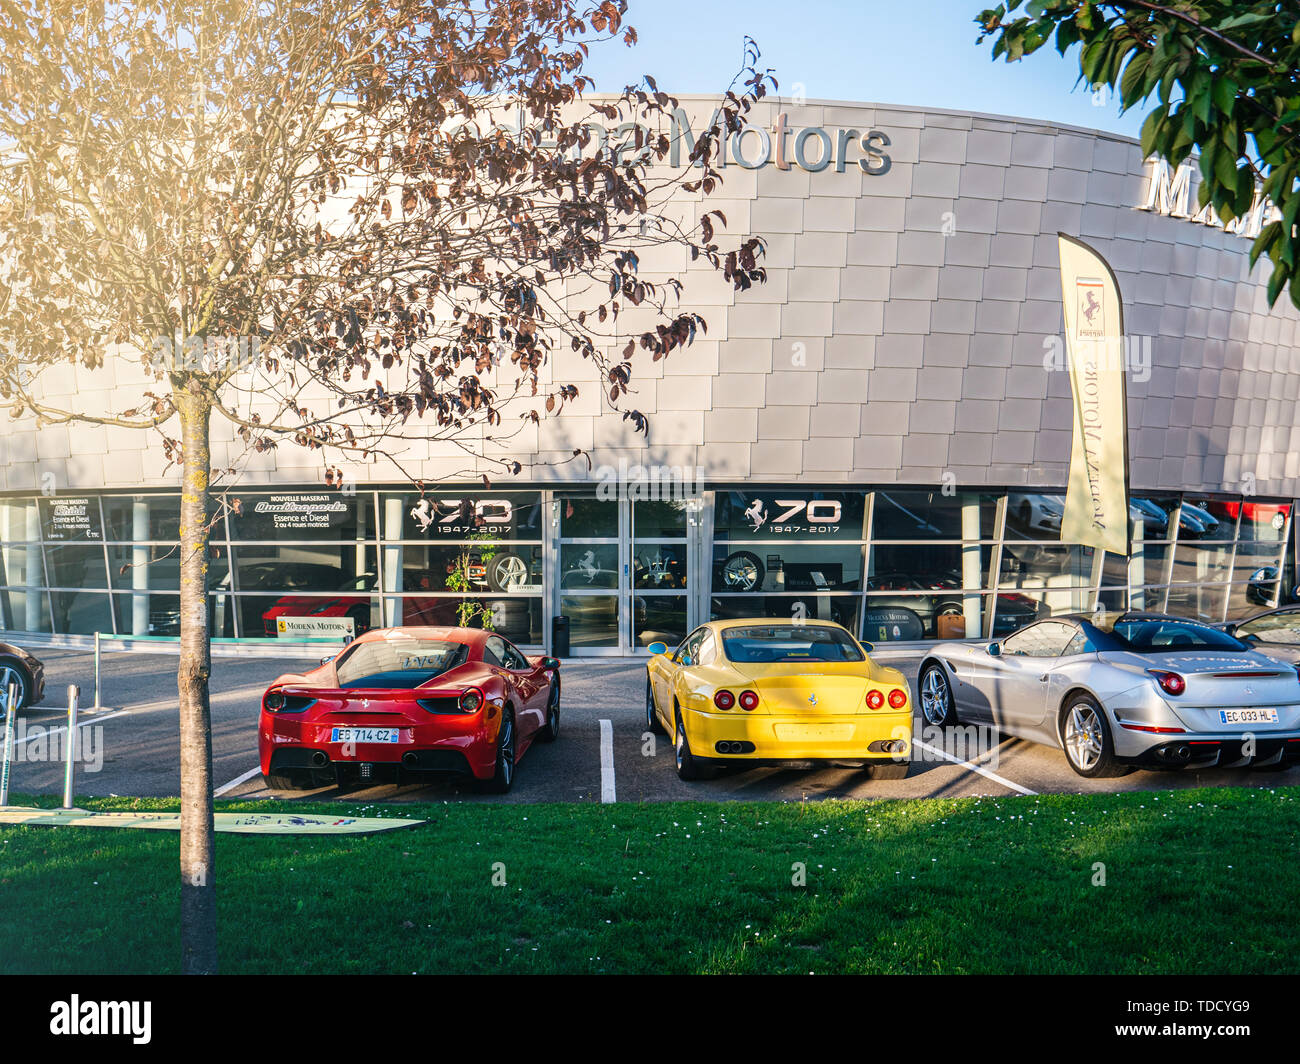 Ferrari Car Showroom In High Resolution Stock Photography And Images Alamy